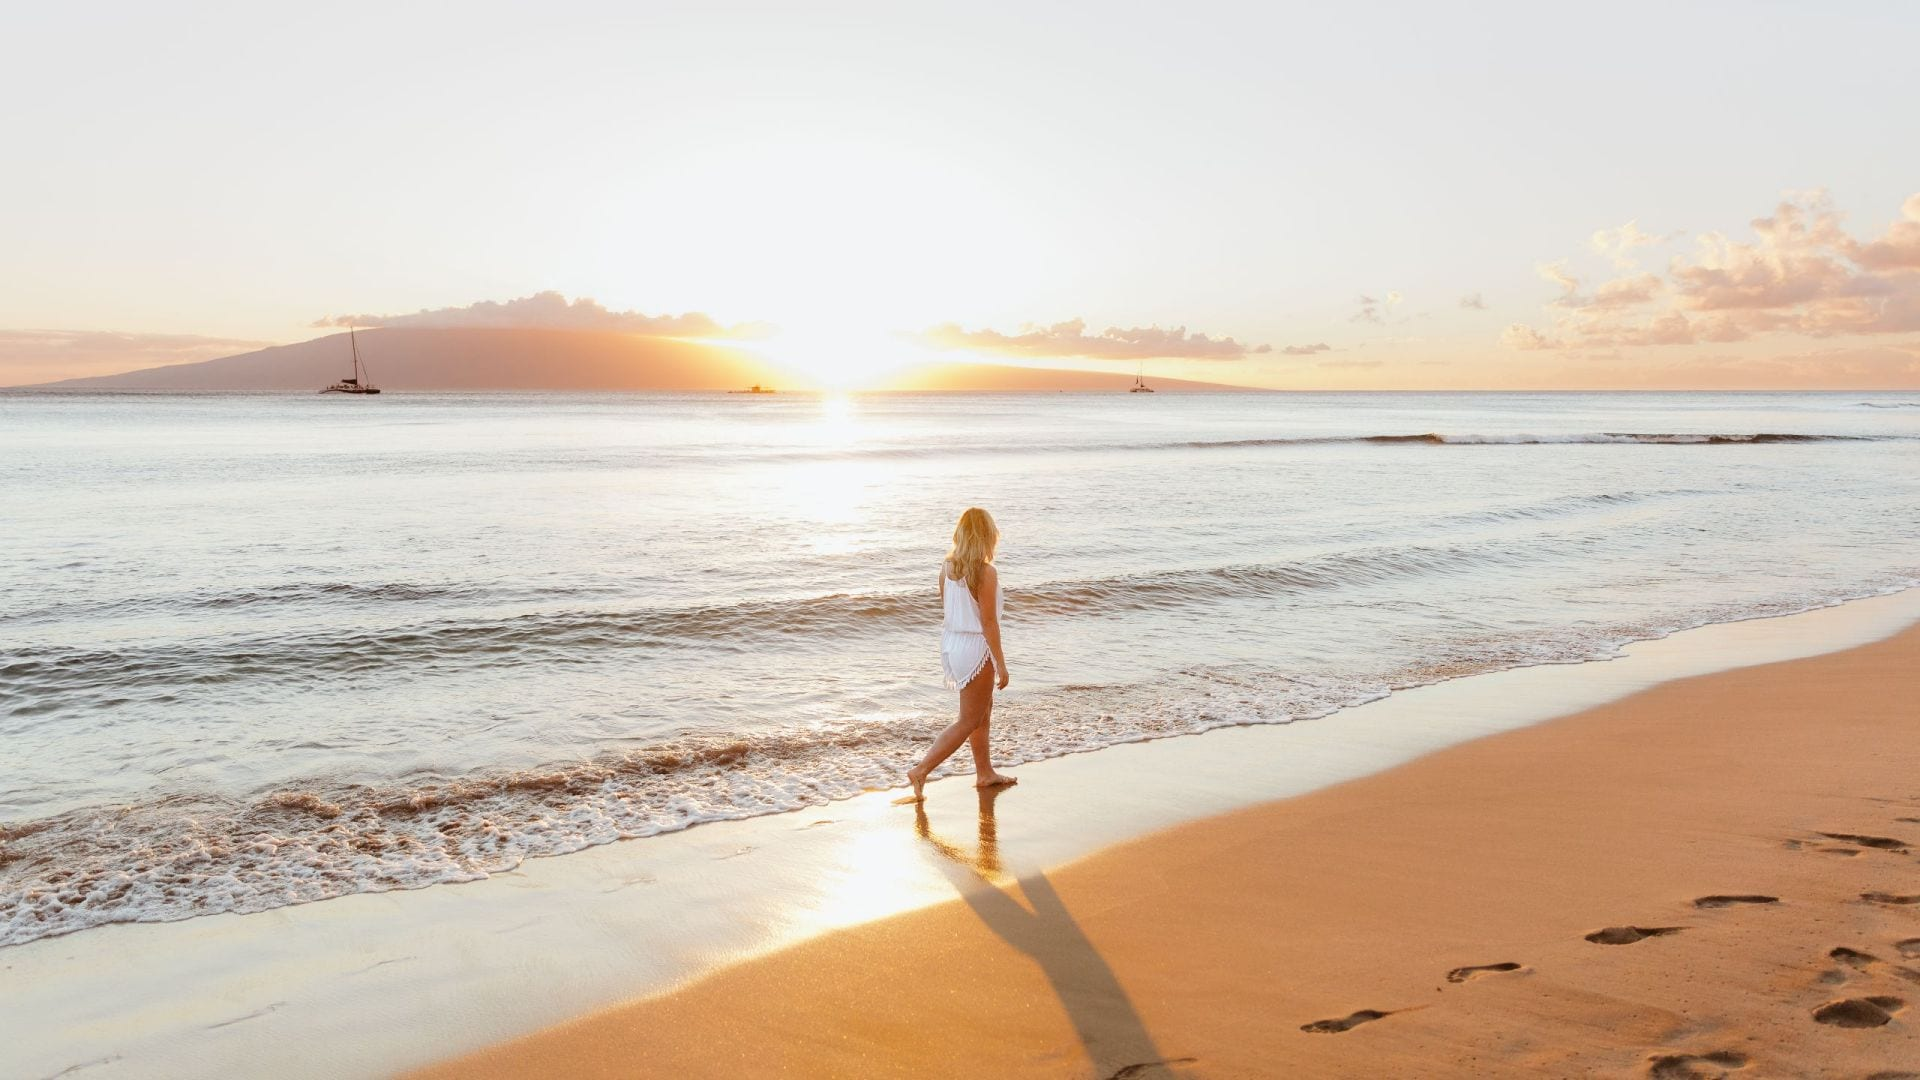 woman walking on beach at susnset